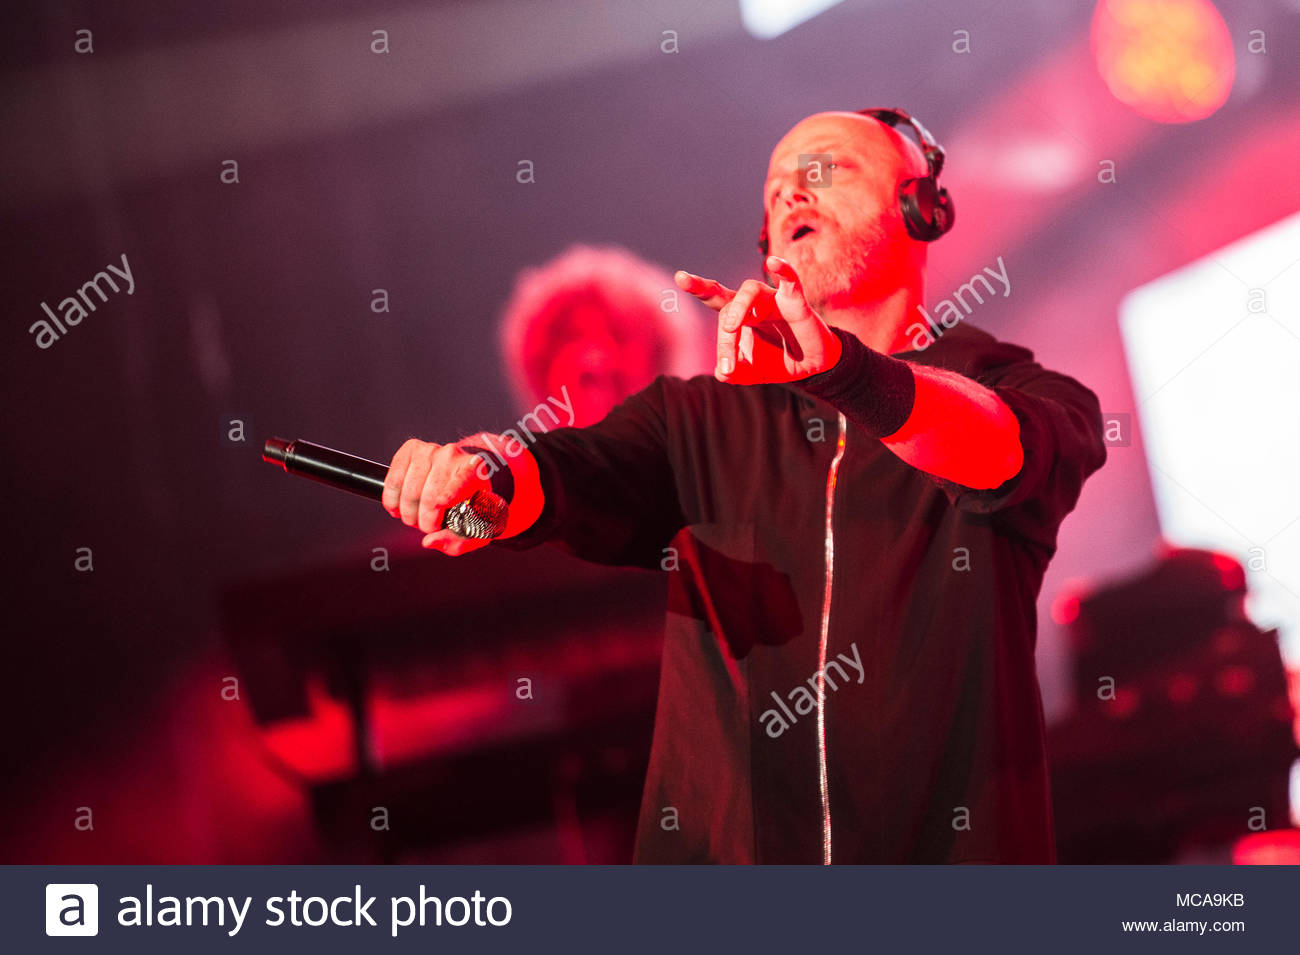 Milan, Italy. 14th Apr, 2018. Italian band Negrita performs live on stage in Milan at Mediolanum forum on April 14, 2018 for the last date of 'DEsert Yacht Club' tour Credit: ELENA DI VINCENZO/Alamy Live News - Stock Image